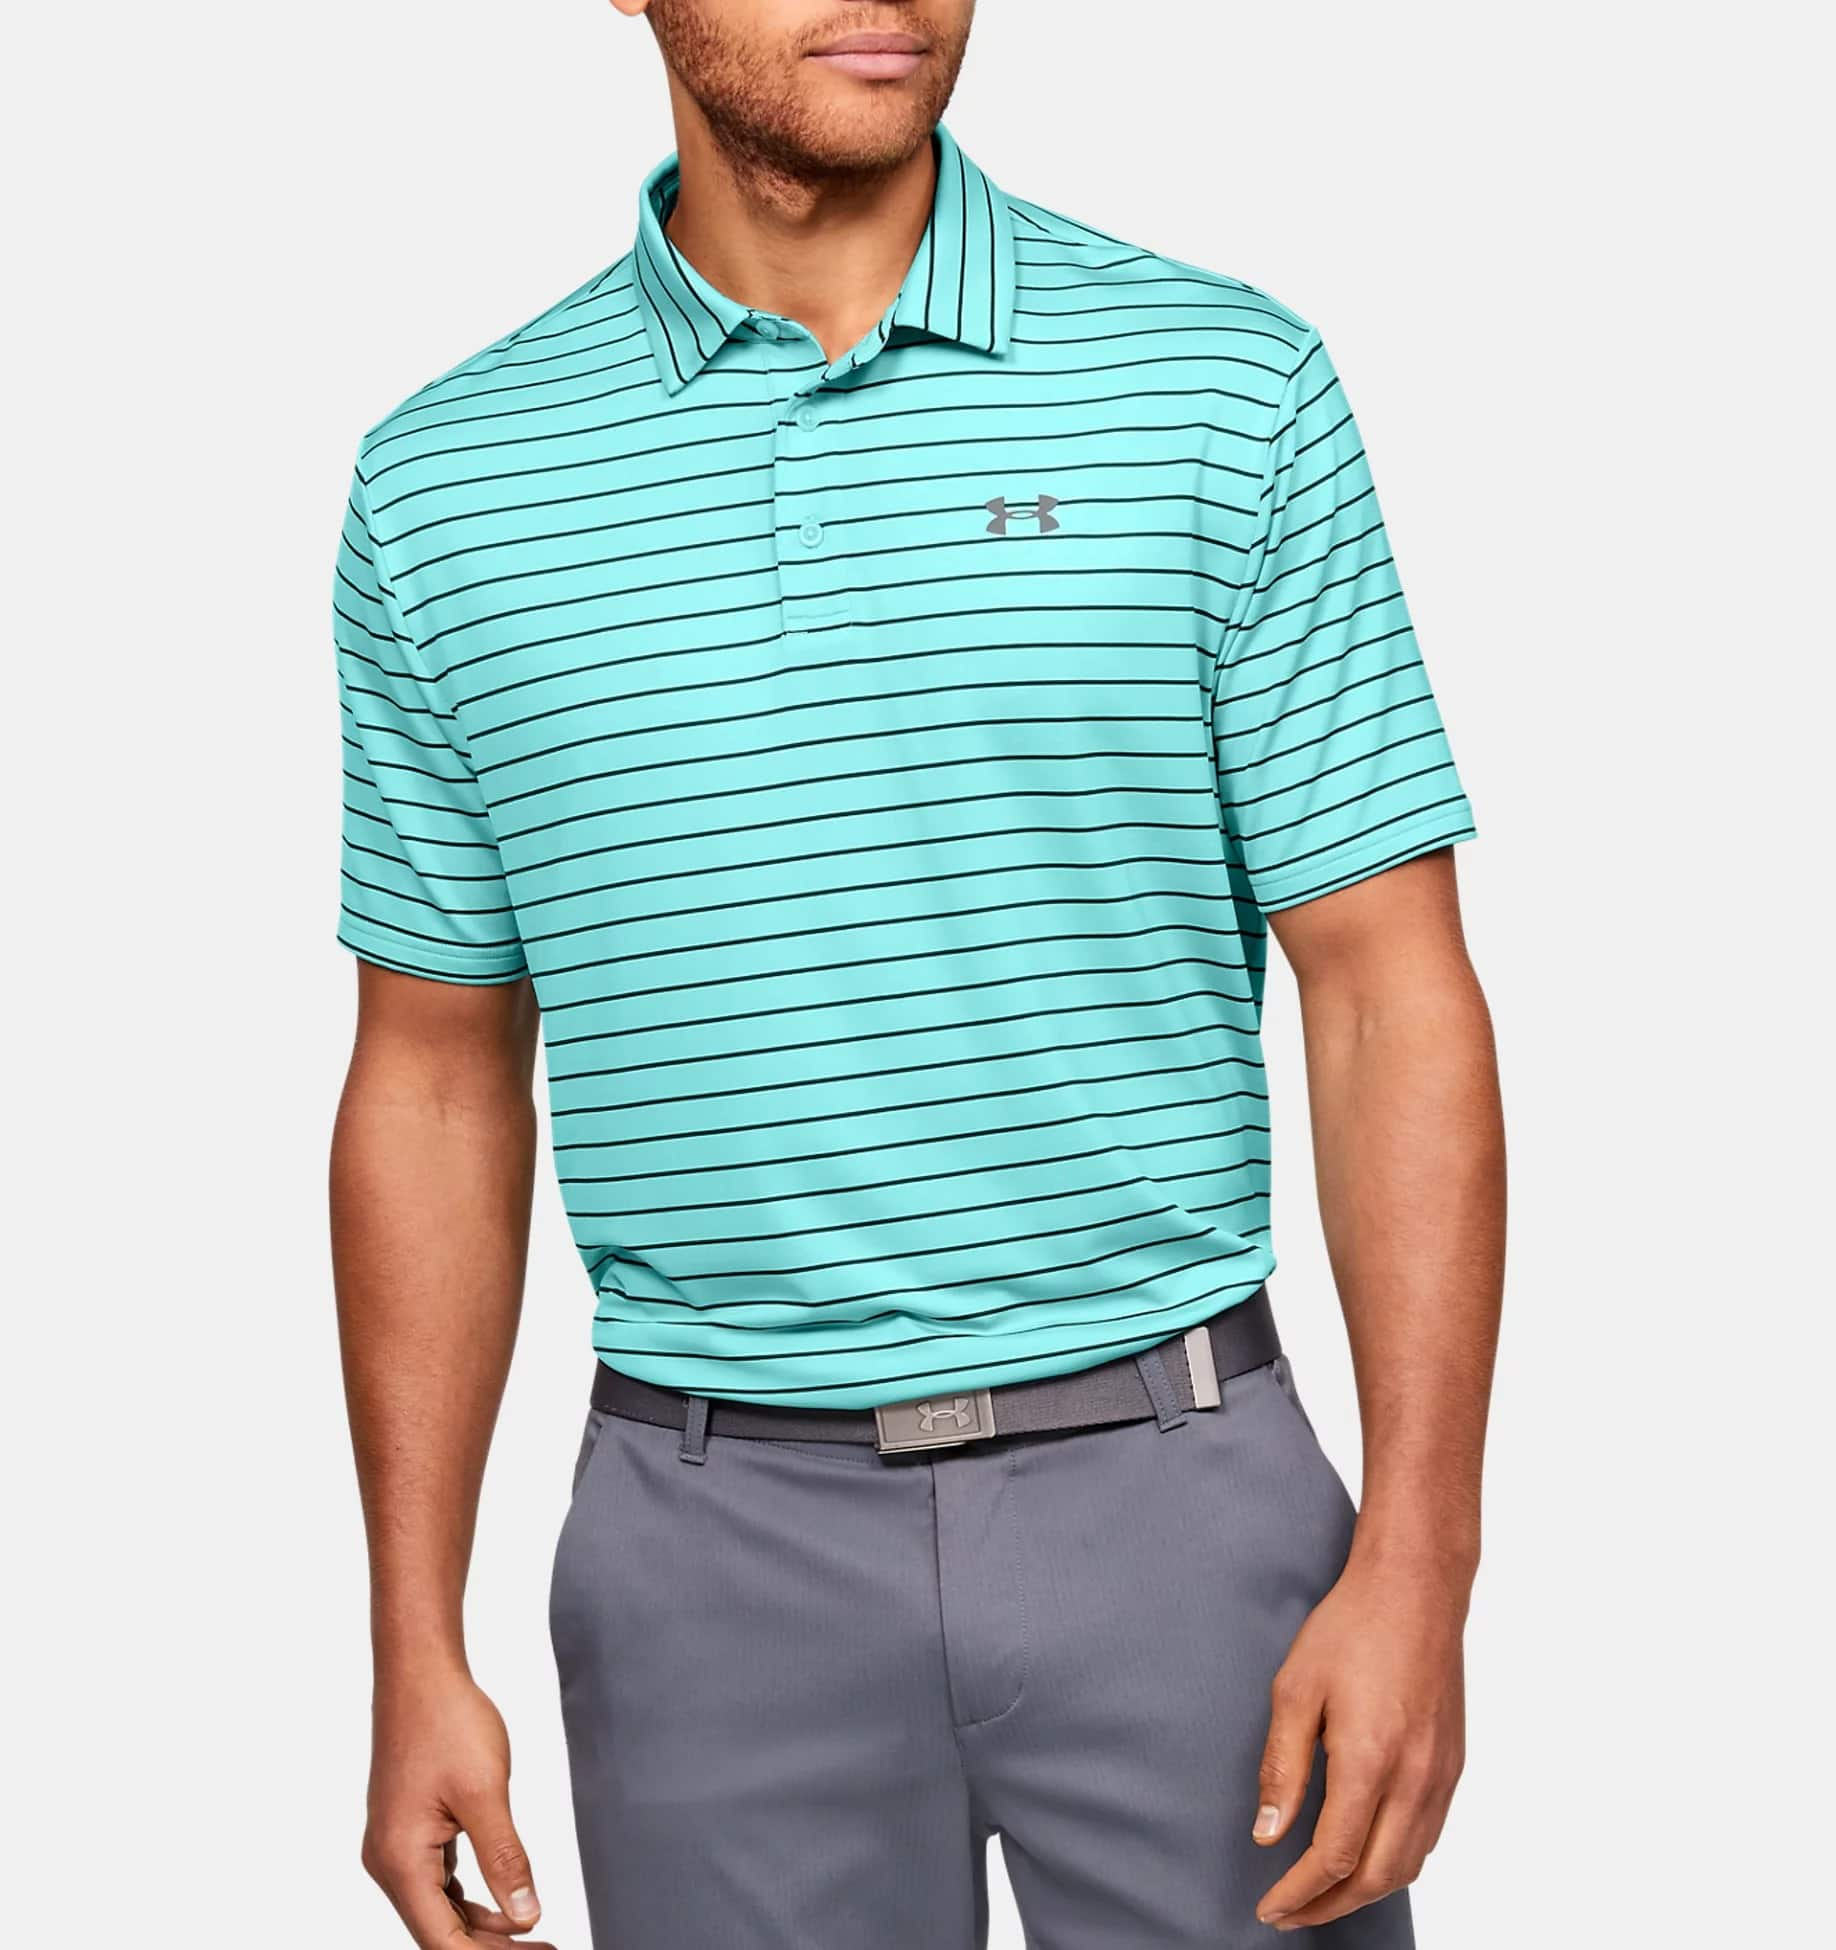 Men's Under Armour Polos (Select Styles/Colors) from 3 For $66.73 [$22.25 Each] + Free S/H